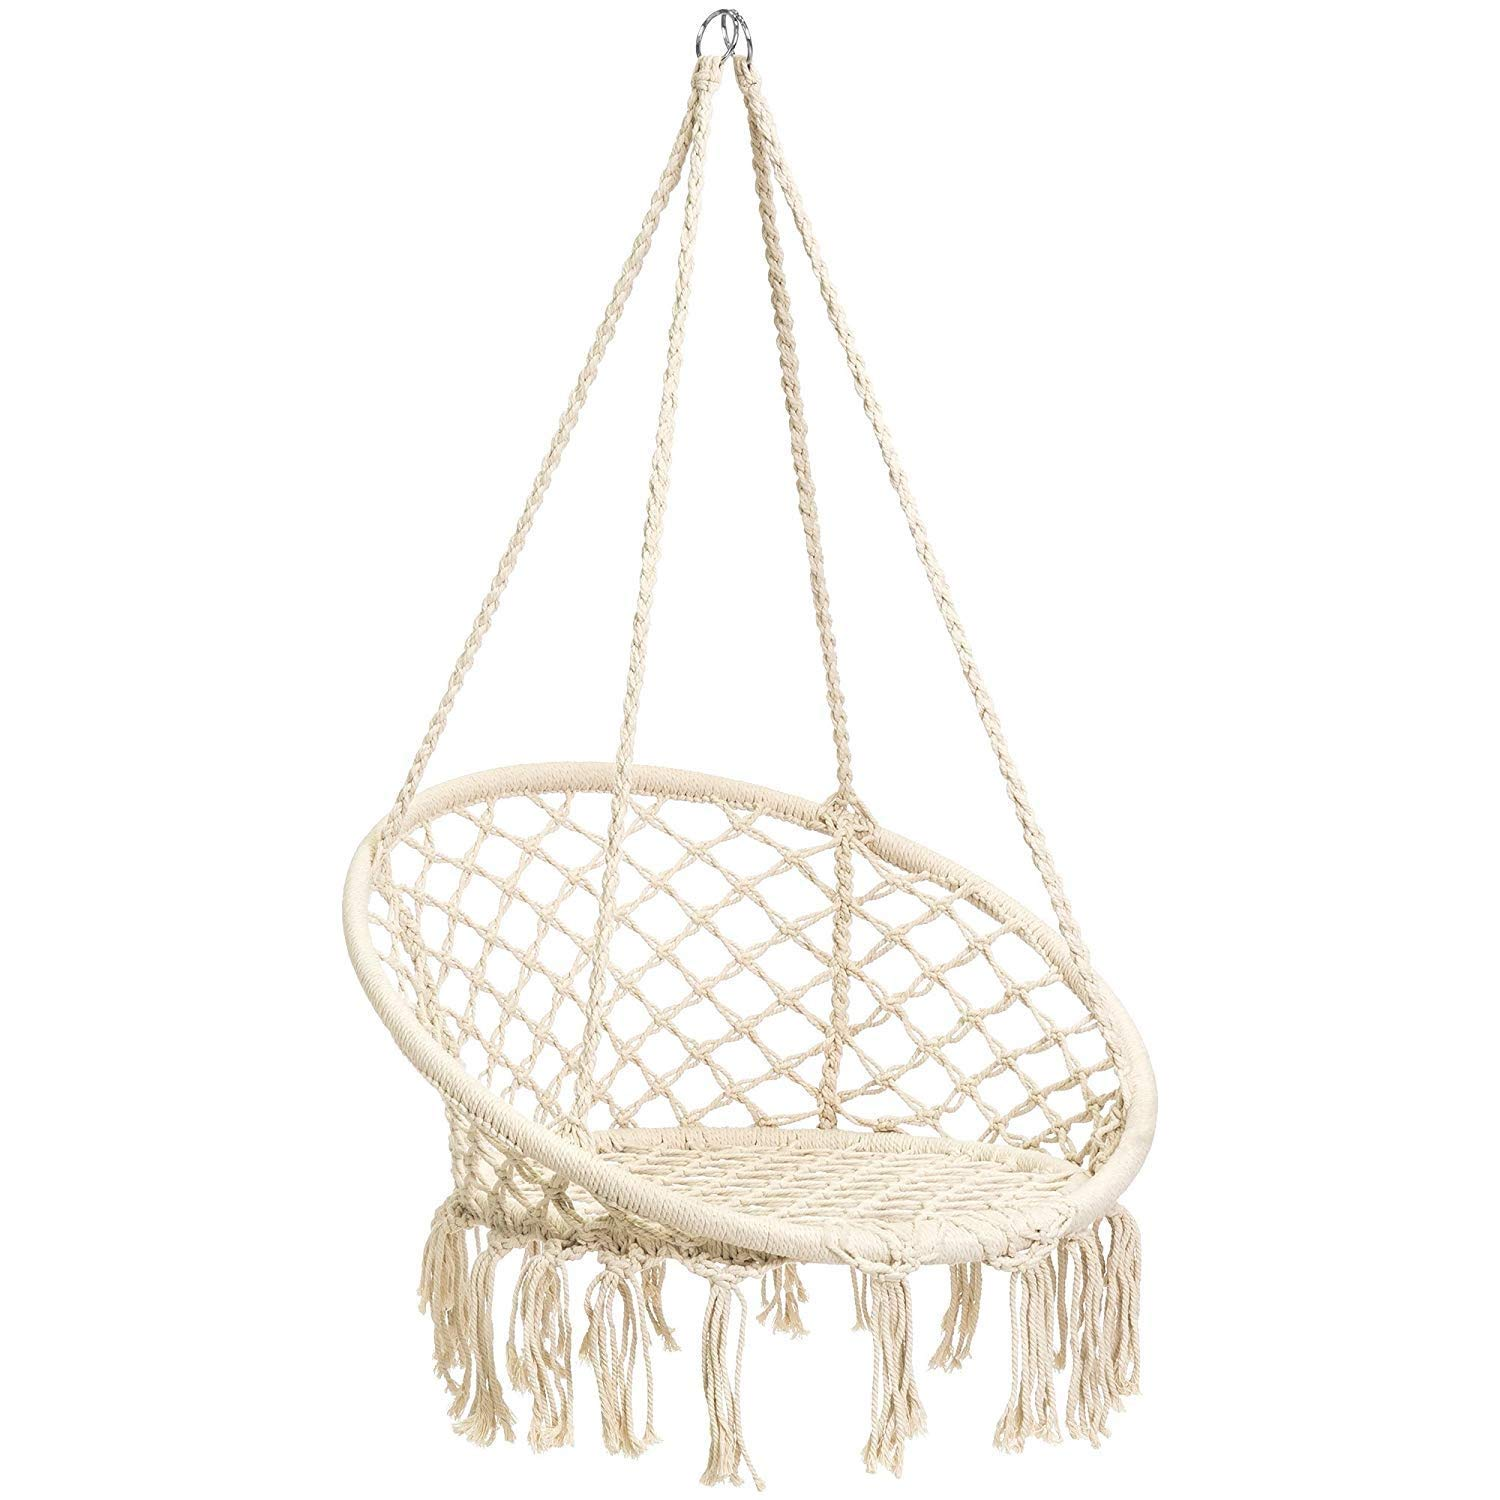 CCTRO Hammock Chair Macrame Swing,Boho Style Rattan Chair Hanging Macrame Hammock Swing Chairs for Indoor/Outdoor Home Patio Porch Yard Garden Deck,265 Pound Capacity (C Beige)